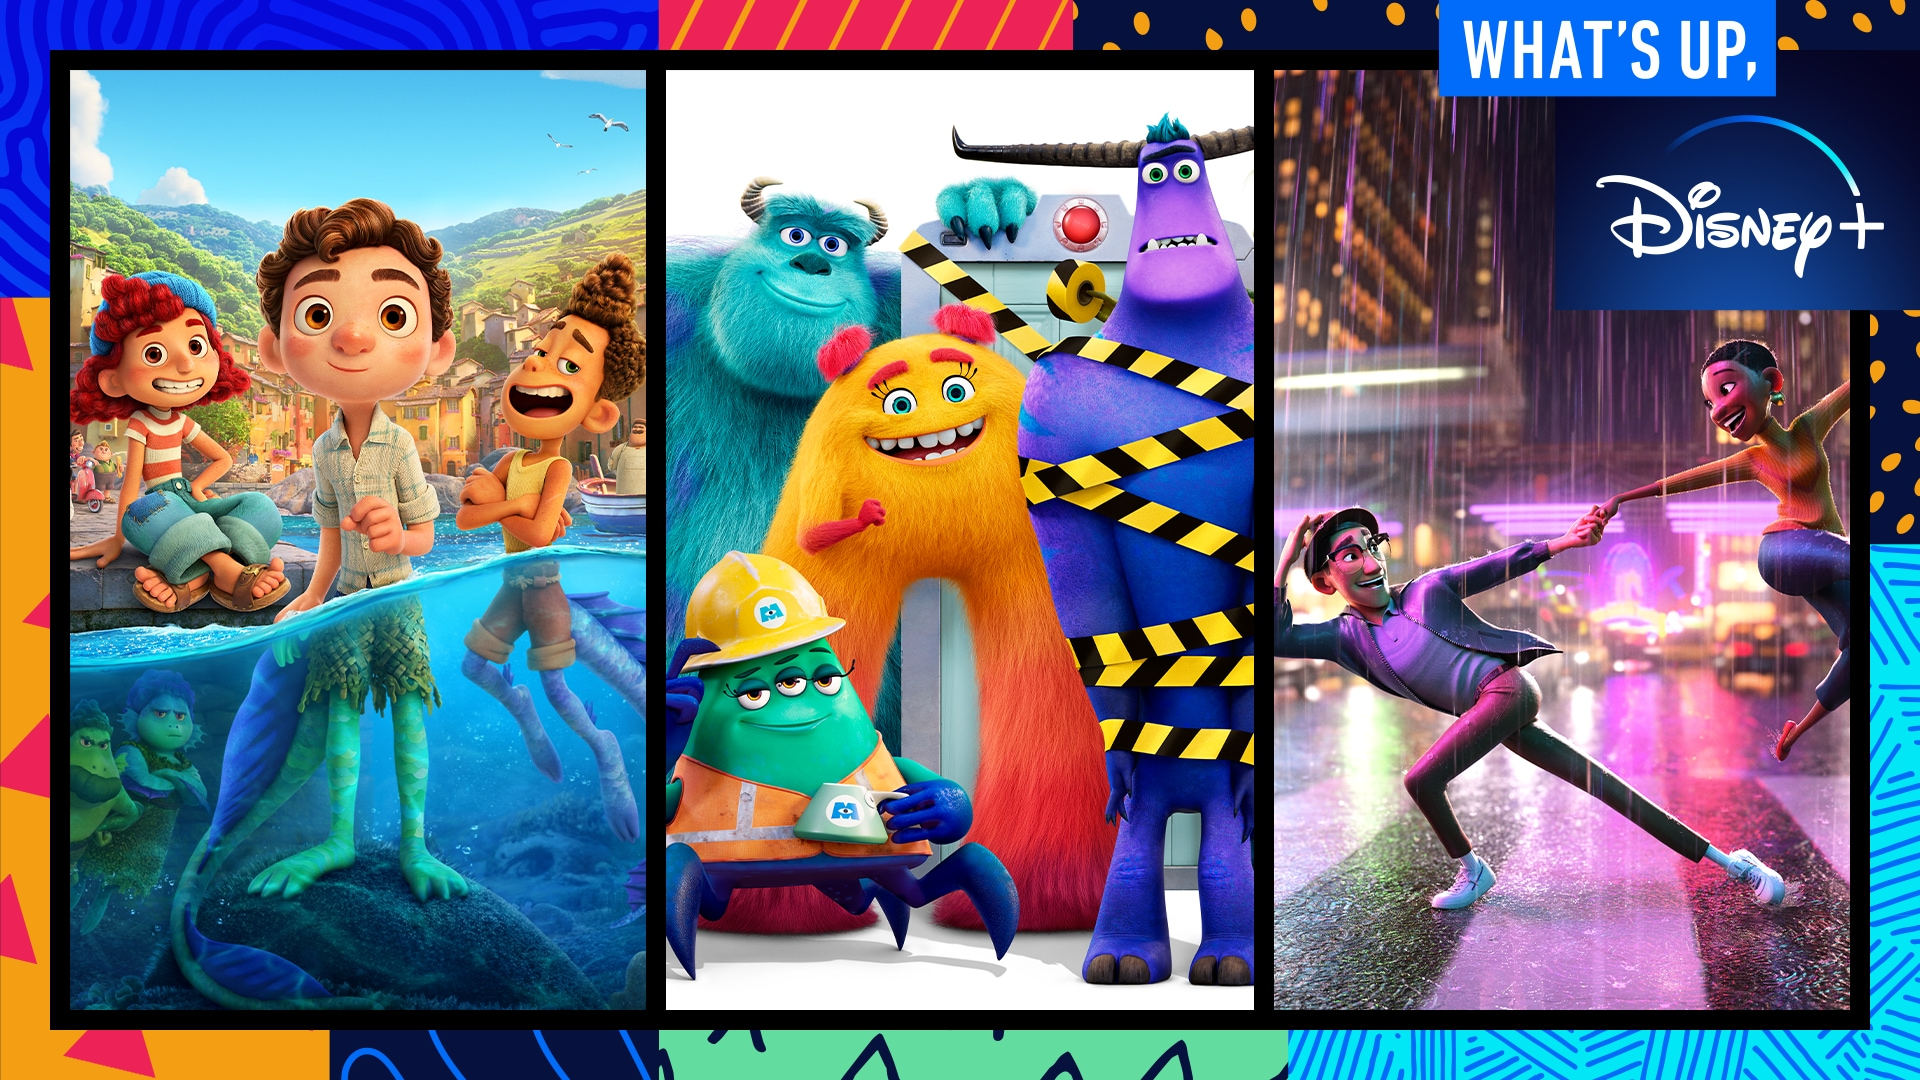 Monsters at Work and Disney and Pixar's Luca | What's Up, Disney+